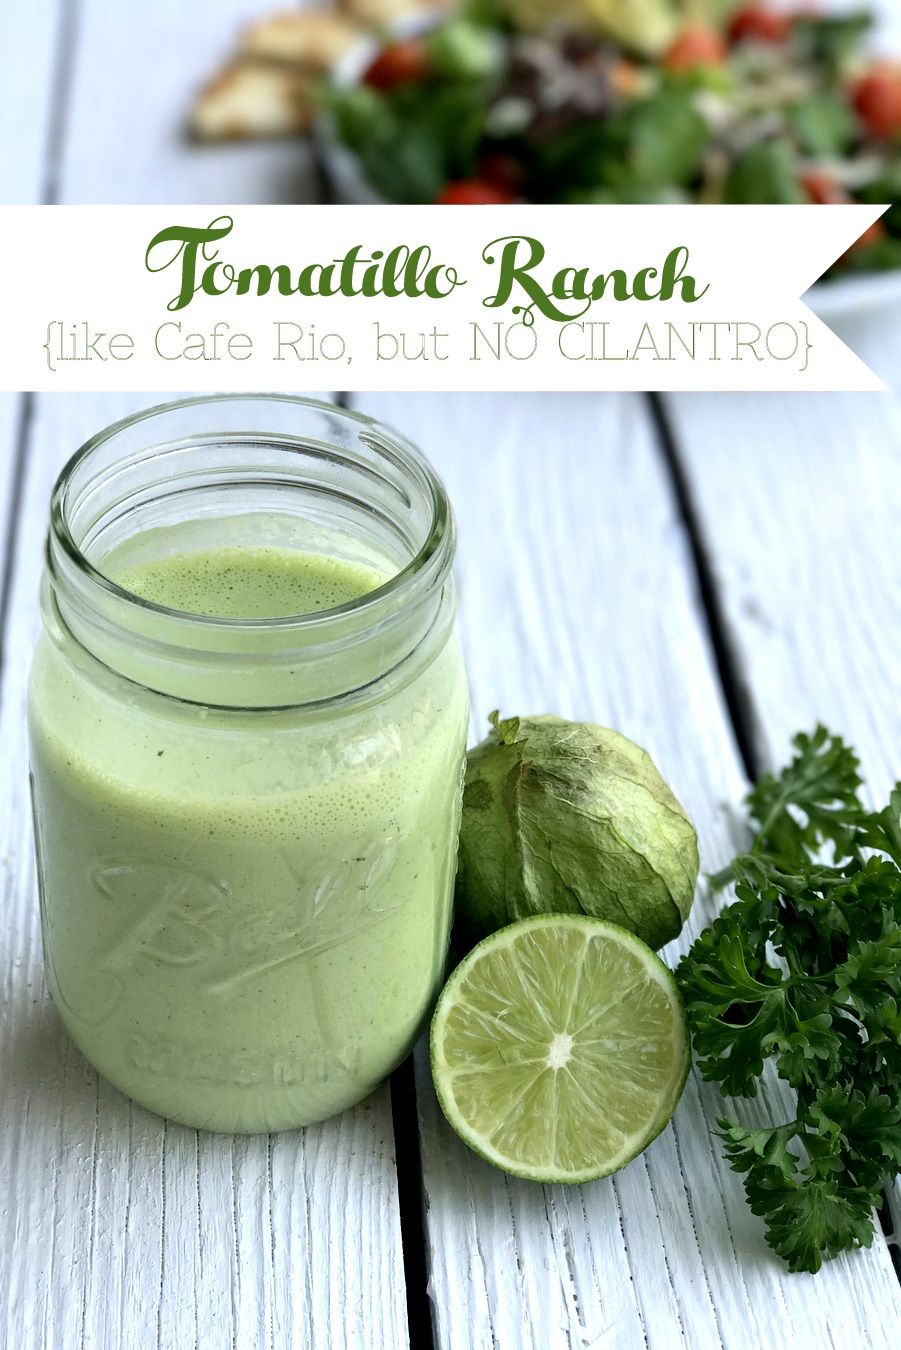 homemade tomatillo ranch- like cafe rio (but without cilantro!)